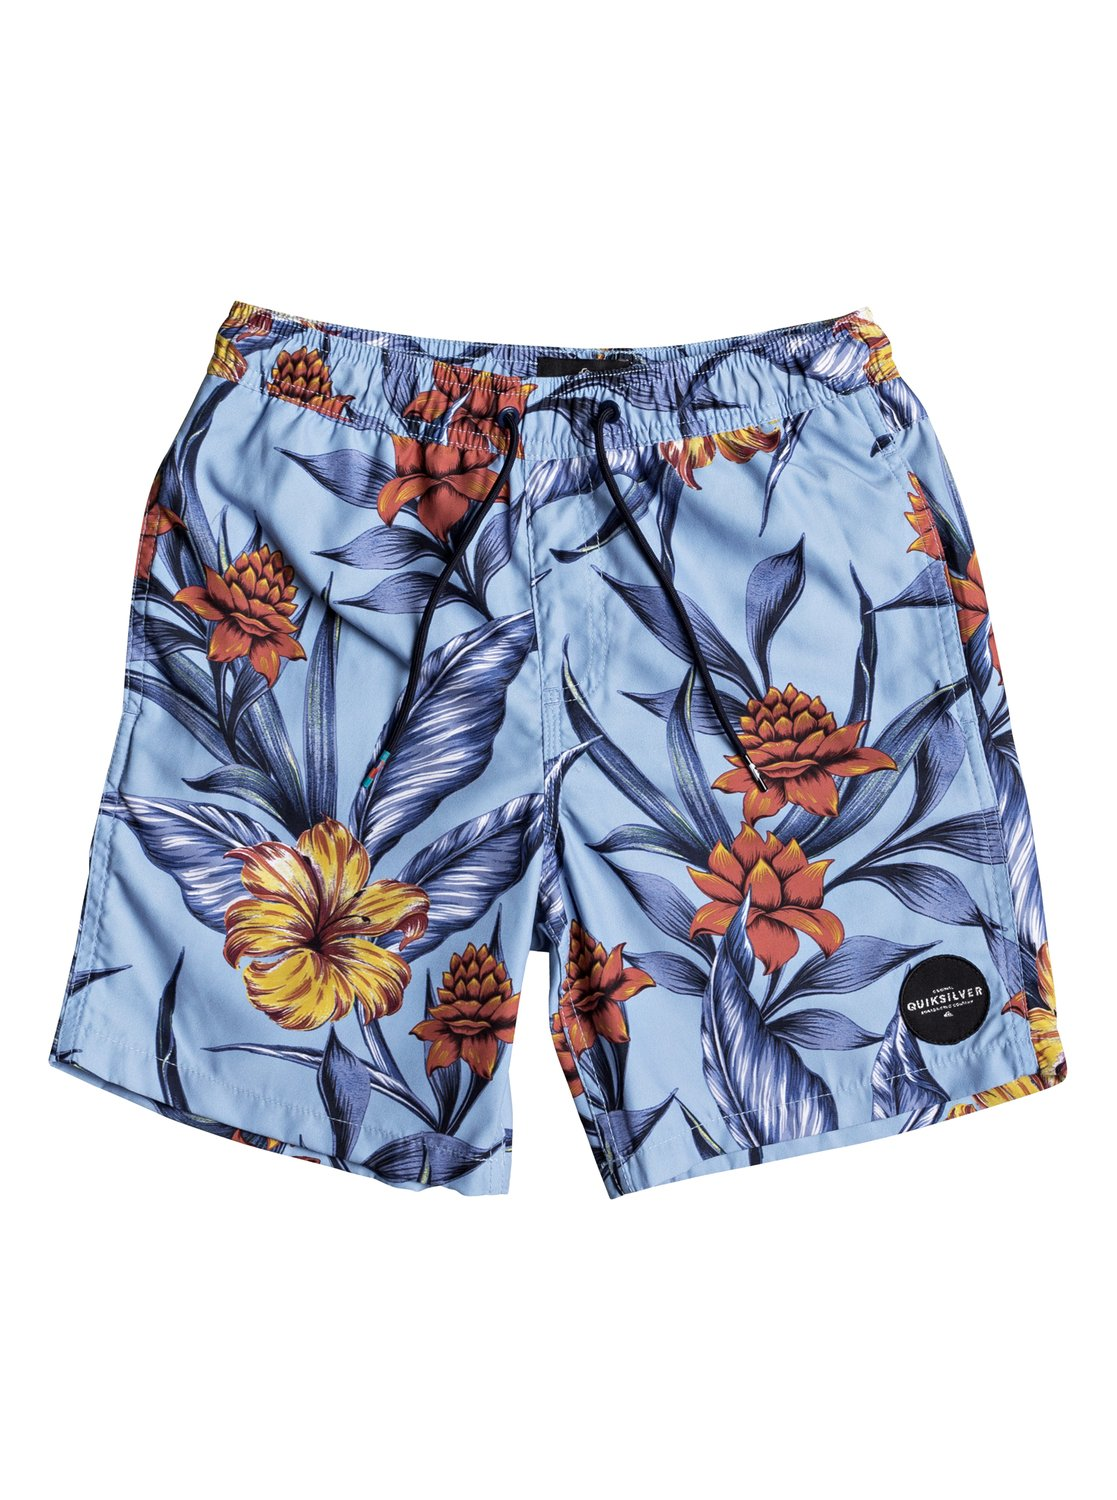 QS Volley Pua Volley 15 - SWIMWEAR - Swimming trunks Quiksilver